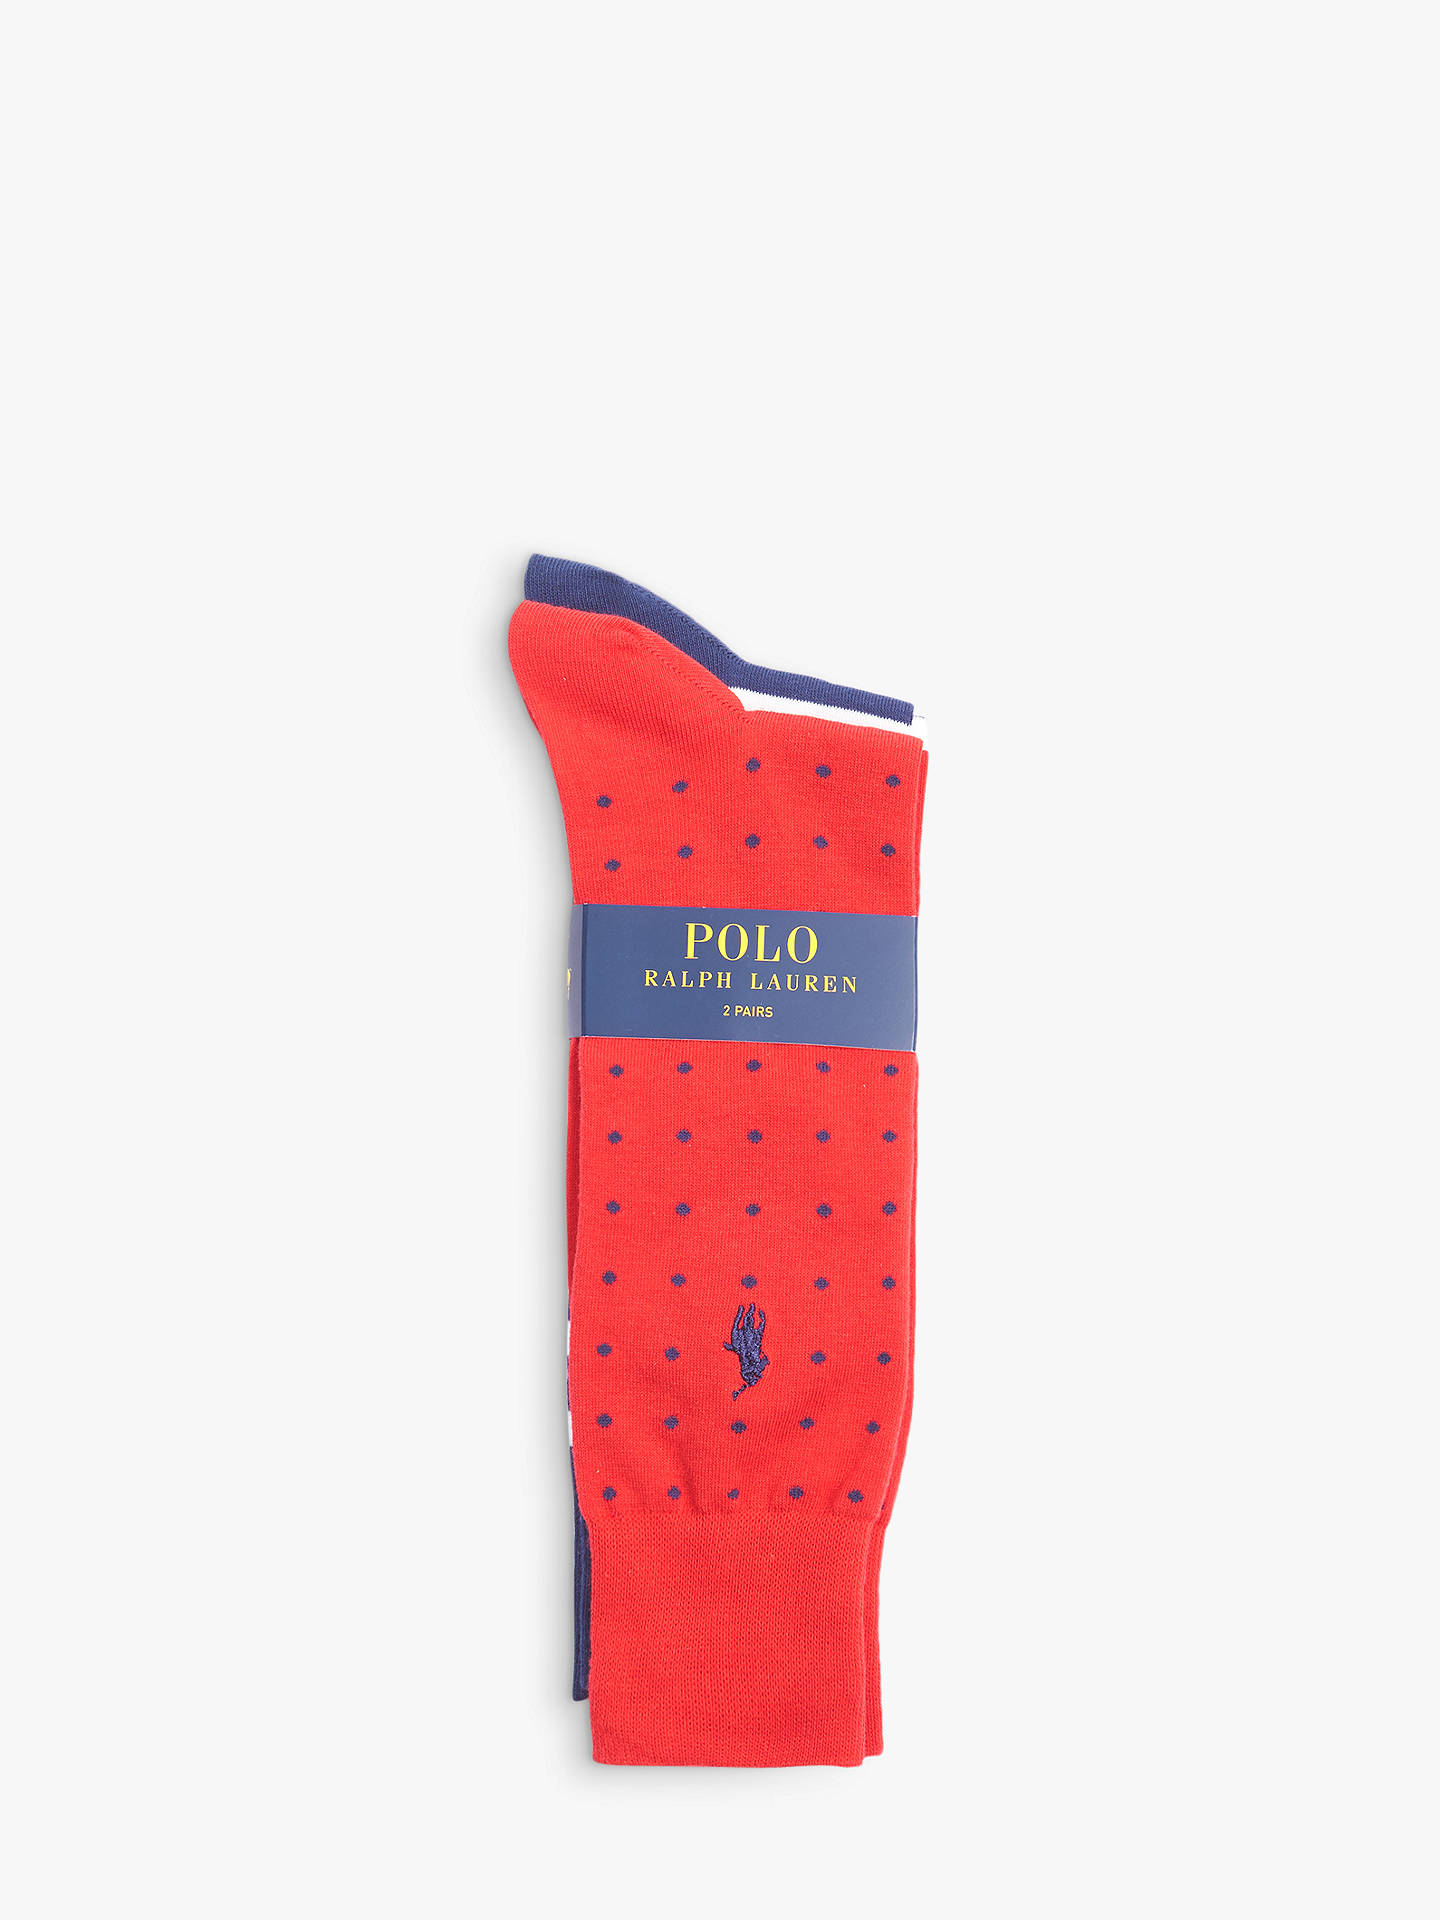 Buy Polo Ralph Lauren Egyptian Cotton Blend Stripe Dot Socks, Pack of 2, One Size, Multi Online at johnlewis.com